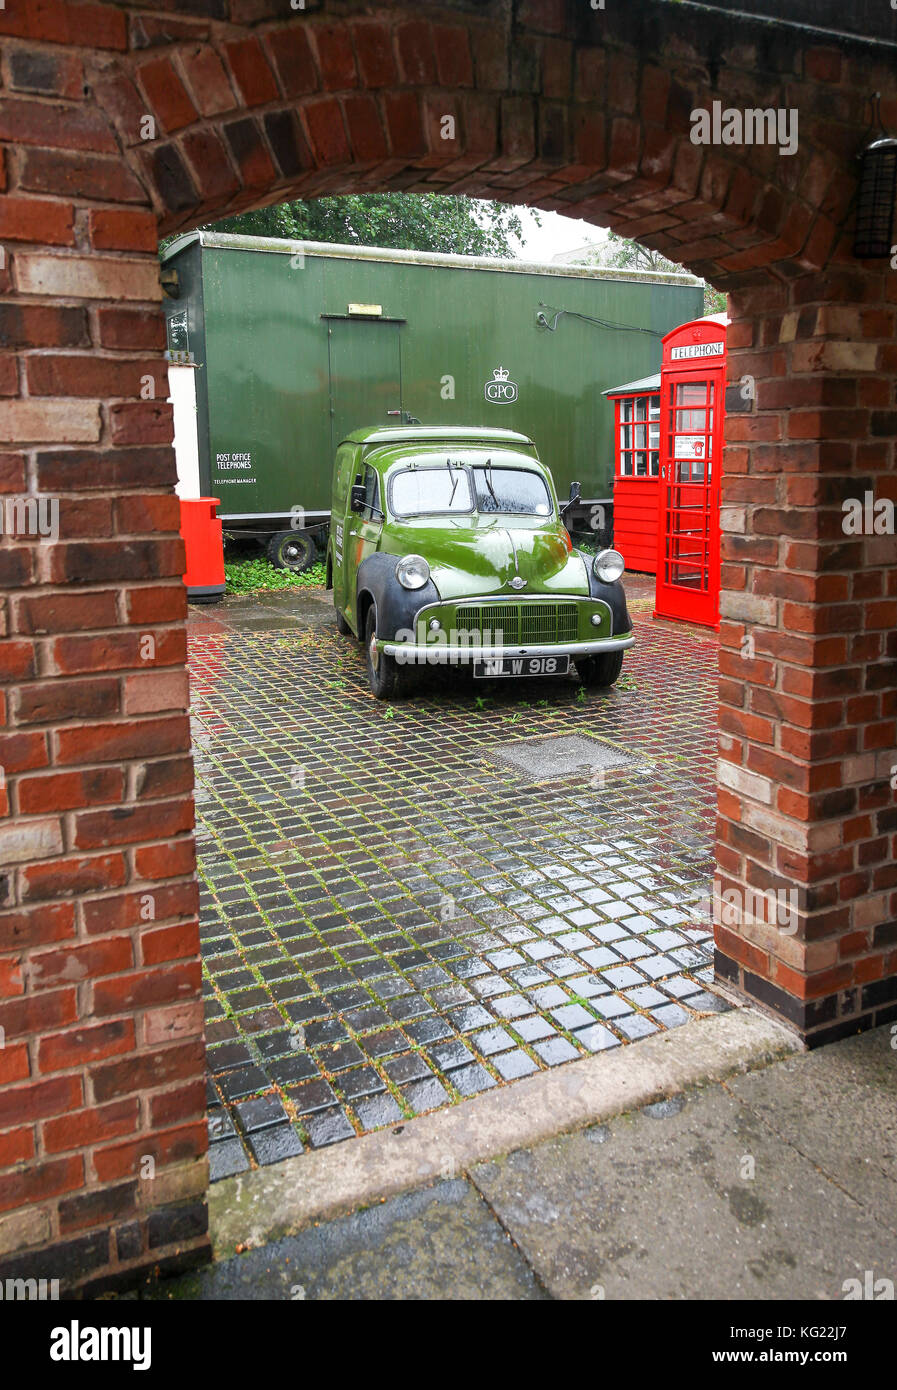 An old Morris Minor Post Office Telephones van at The National Telephone Kiosk Collection, Avoncroft Museum of Buildings, - Stock Image